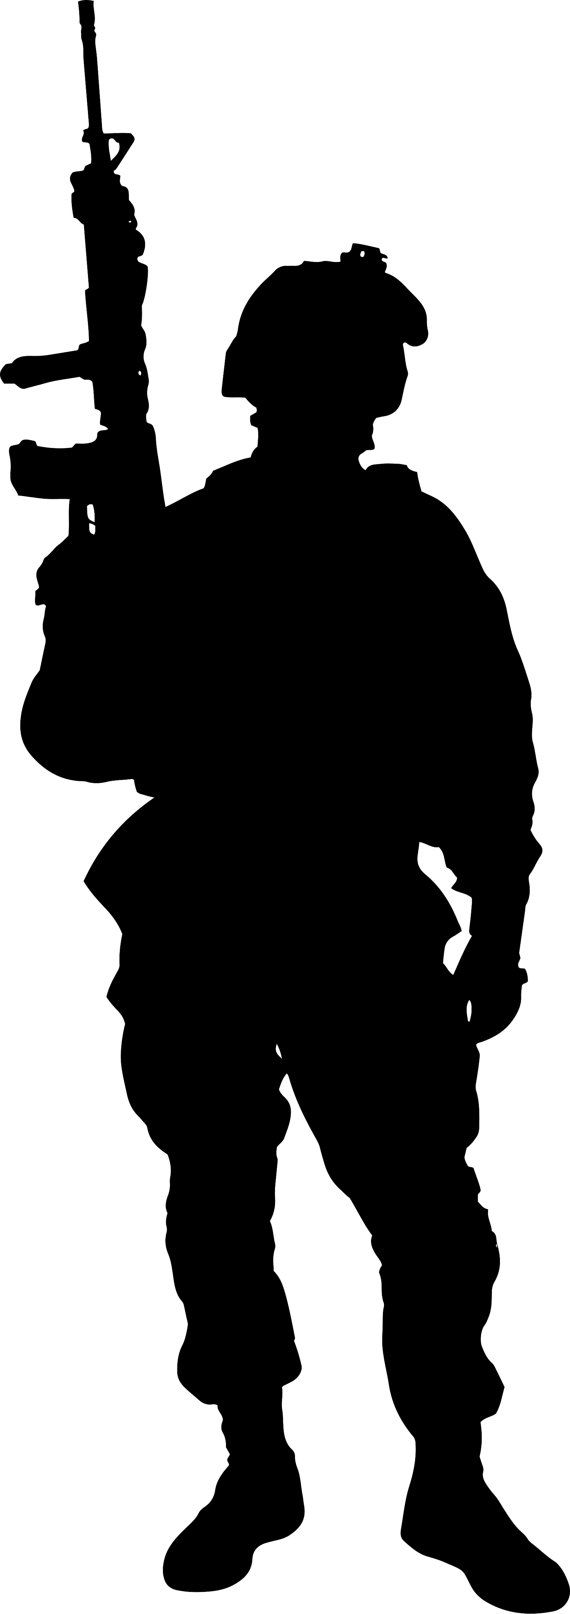 Army Soldier Wall Decal Wall Stickers Large 163 Cm X 58 Cm 5 Feet Soldier Silhouette Military Drawings Army Soldier